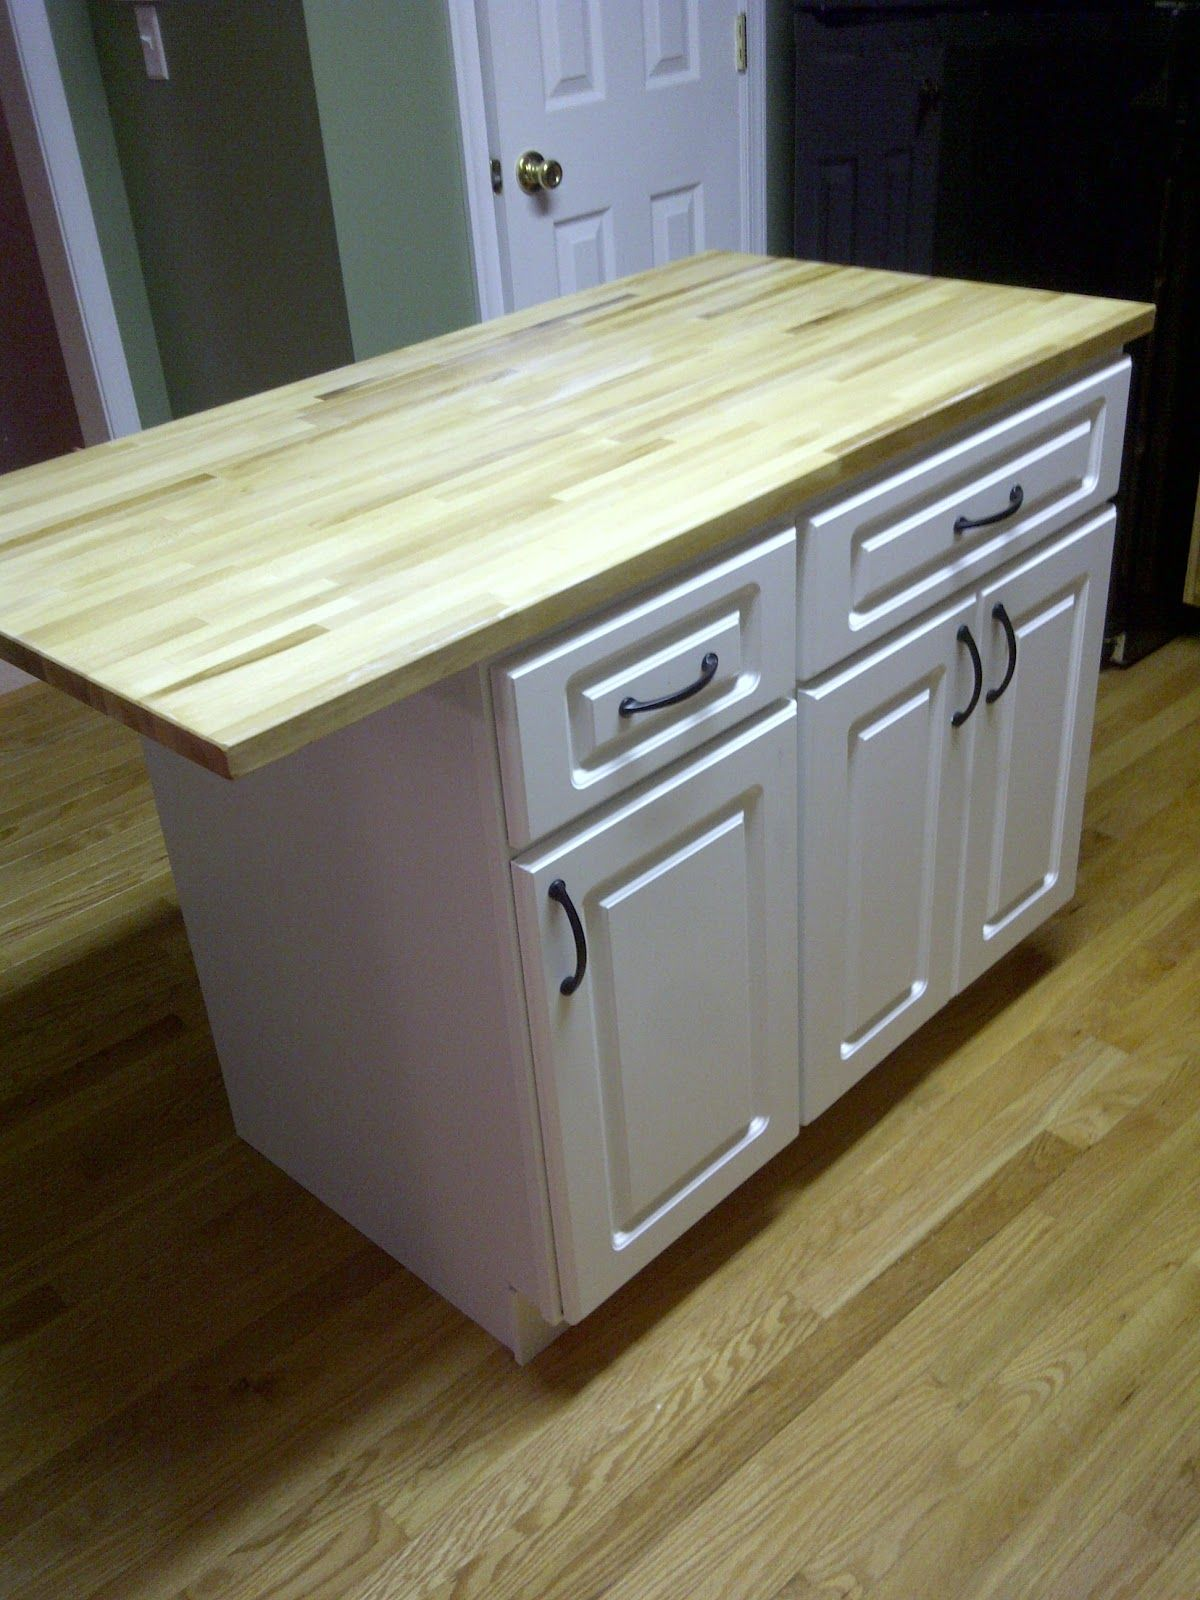 inexpensive kitchen countertops DIY Kitchen island cheap kitchen cabinets and a countertop easy